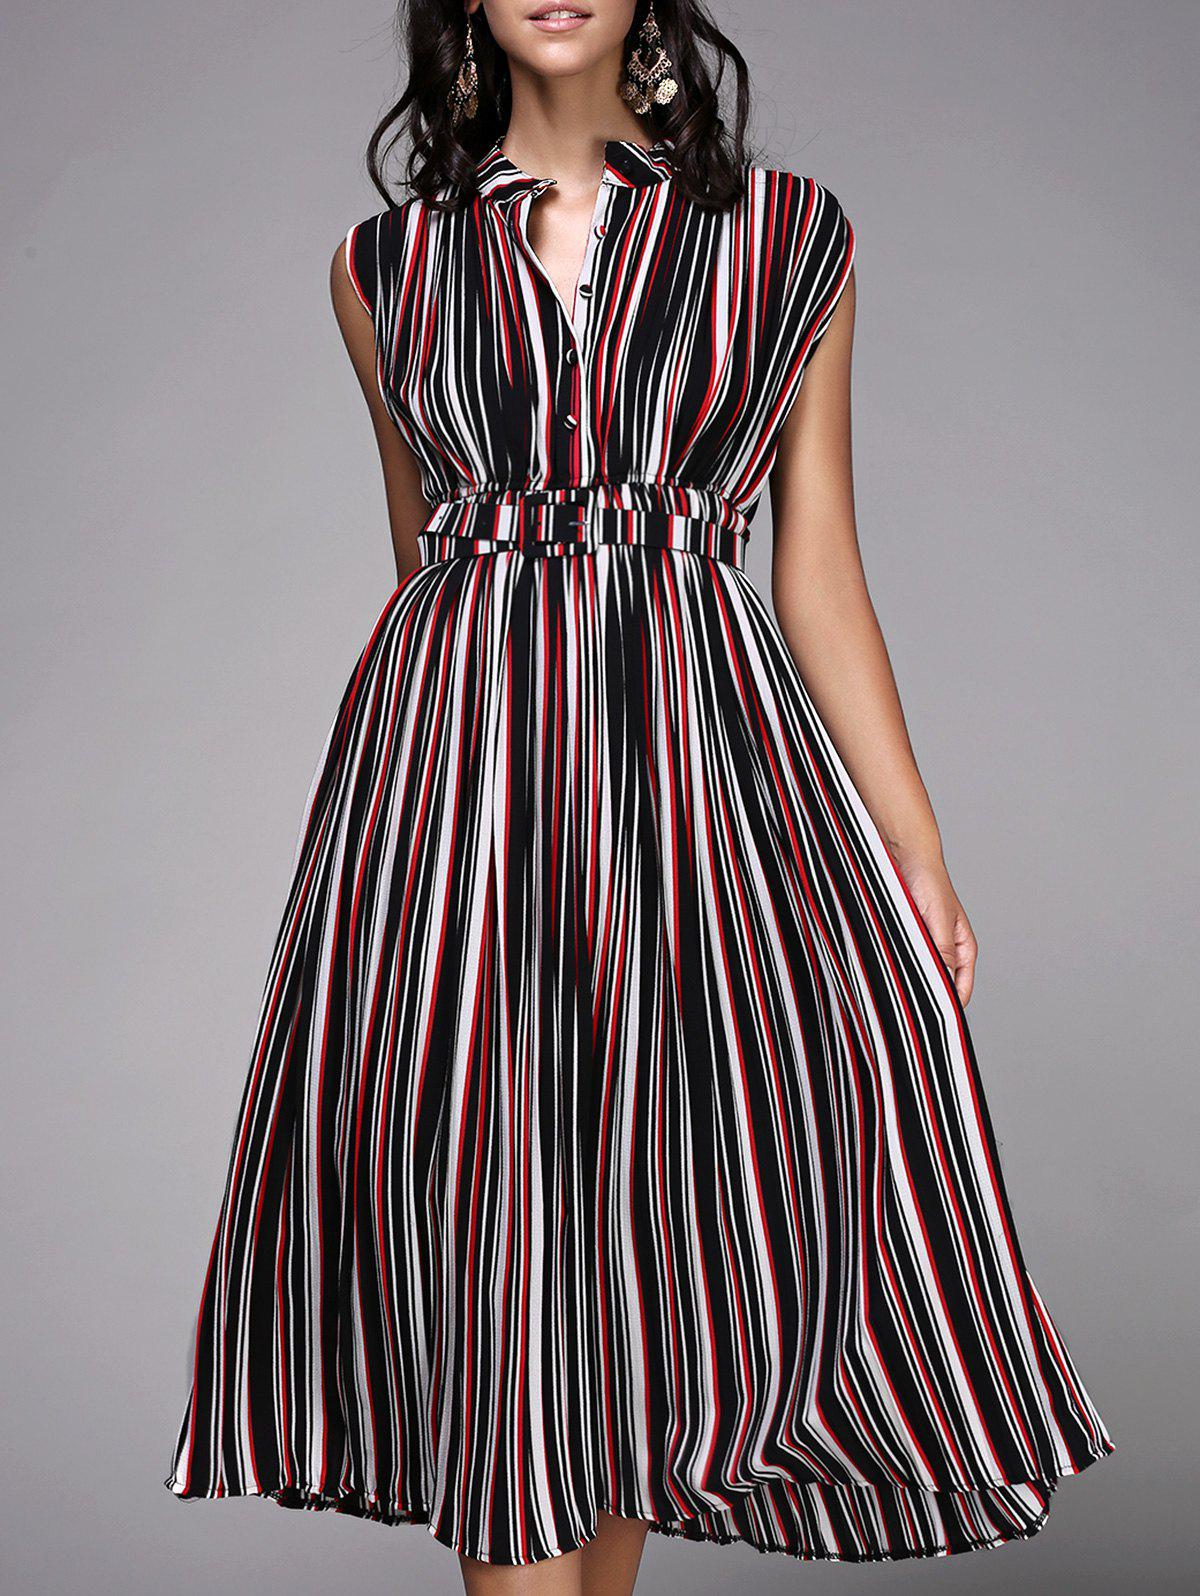 Fashionable Sleeveless Striped Button Design Women's Dress - STRIPE ONE SIZE(FIT SIZE XS TO M)